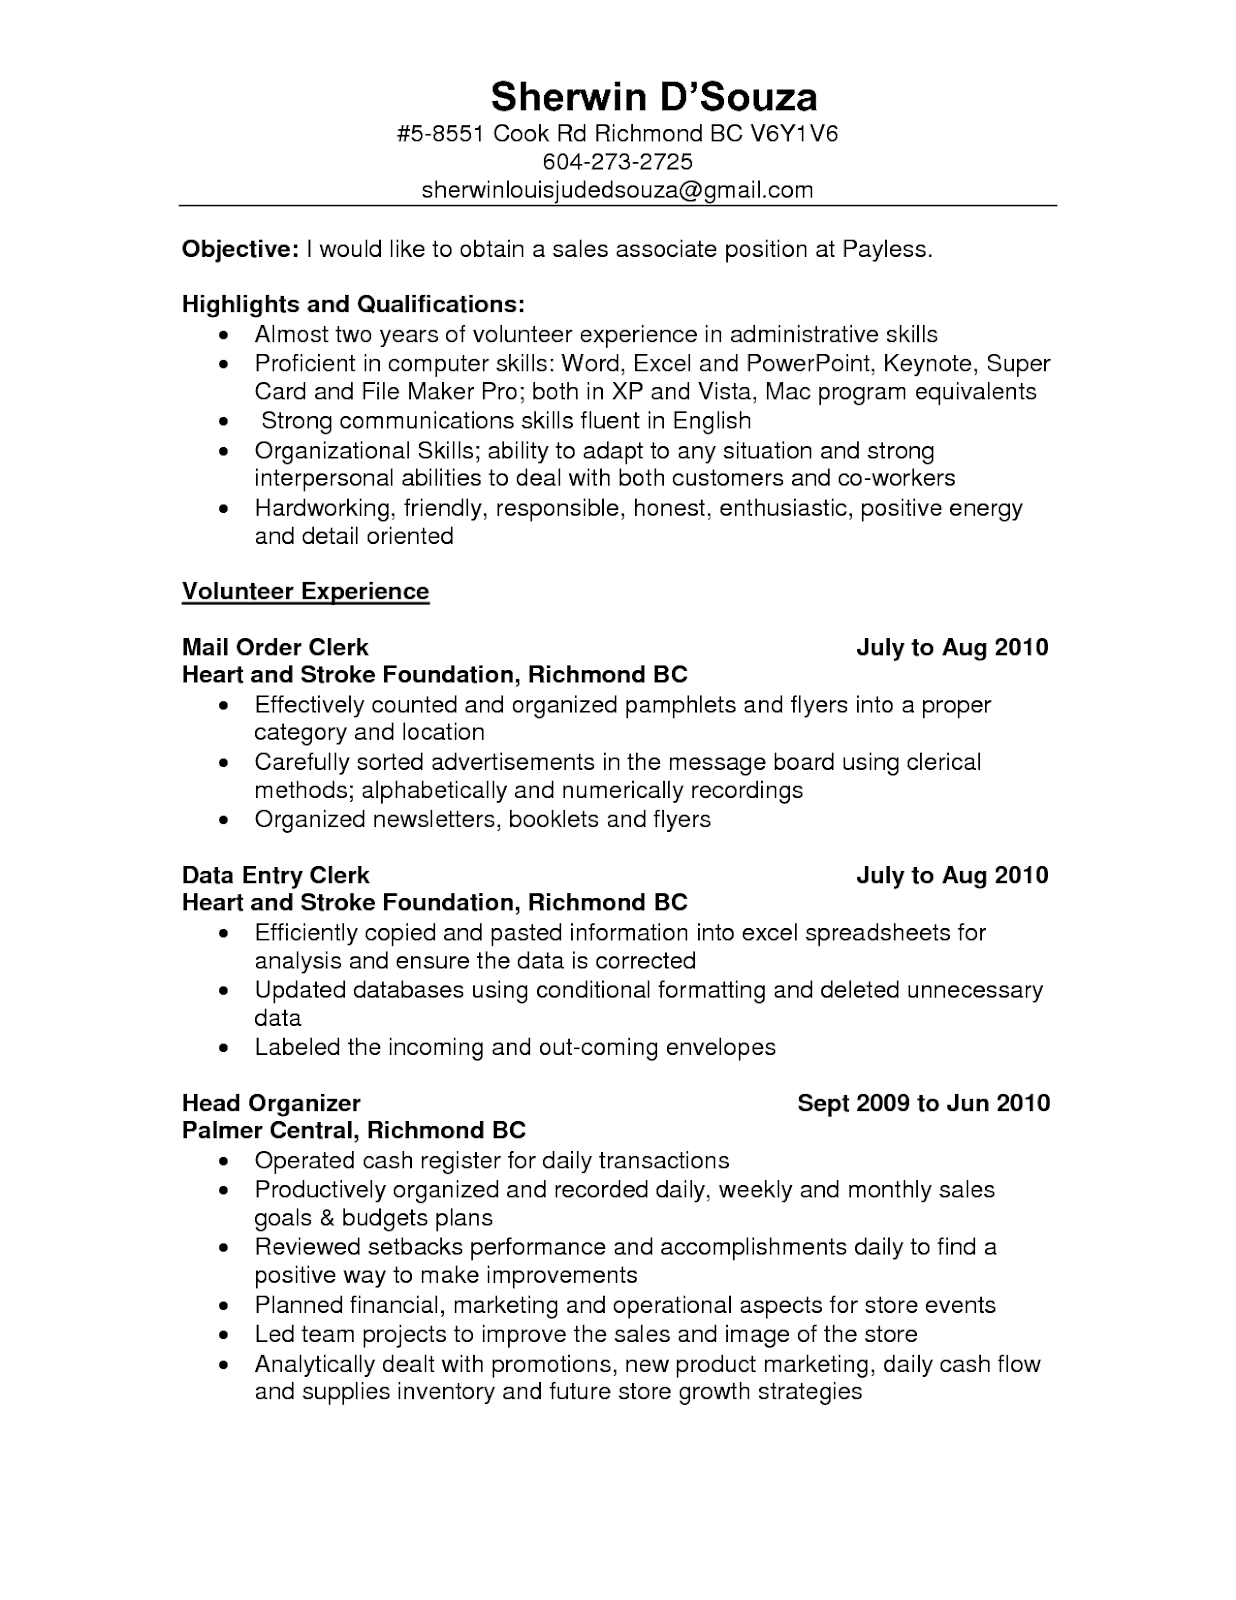 Marketing Assistant Resume Example Assistant Marketing Manager Resume Examples 2019 Marketing Assistant Re Good Resume Examples Resume Skills Resume Examples